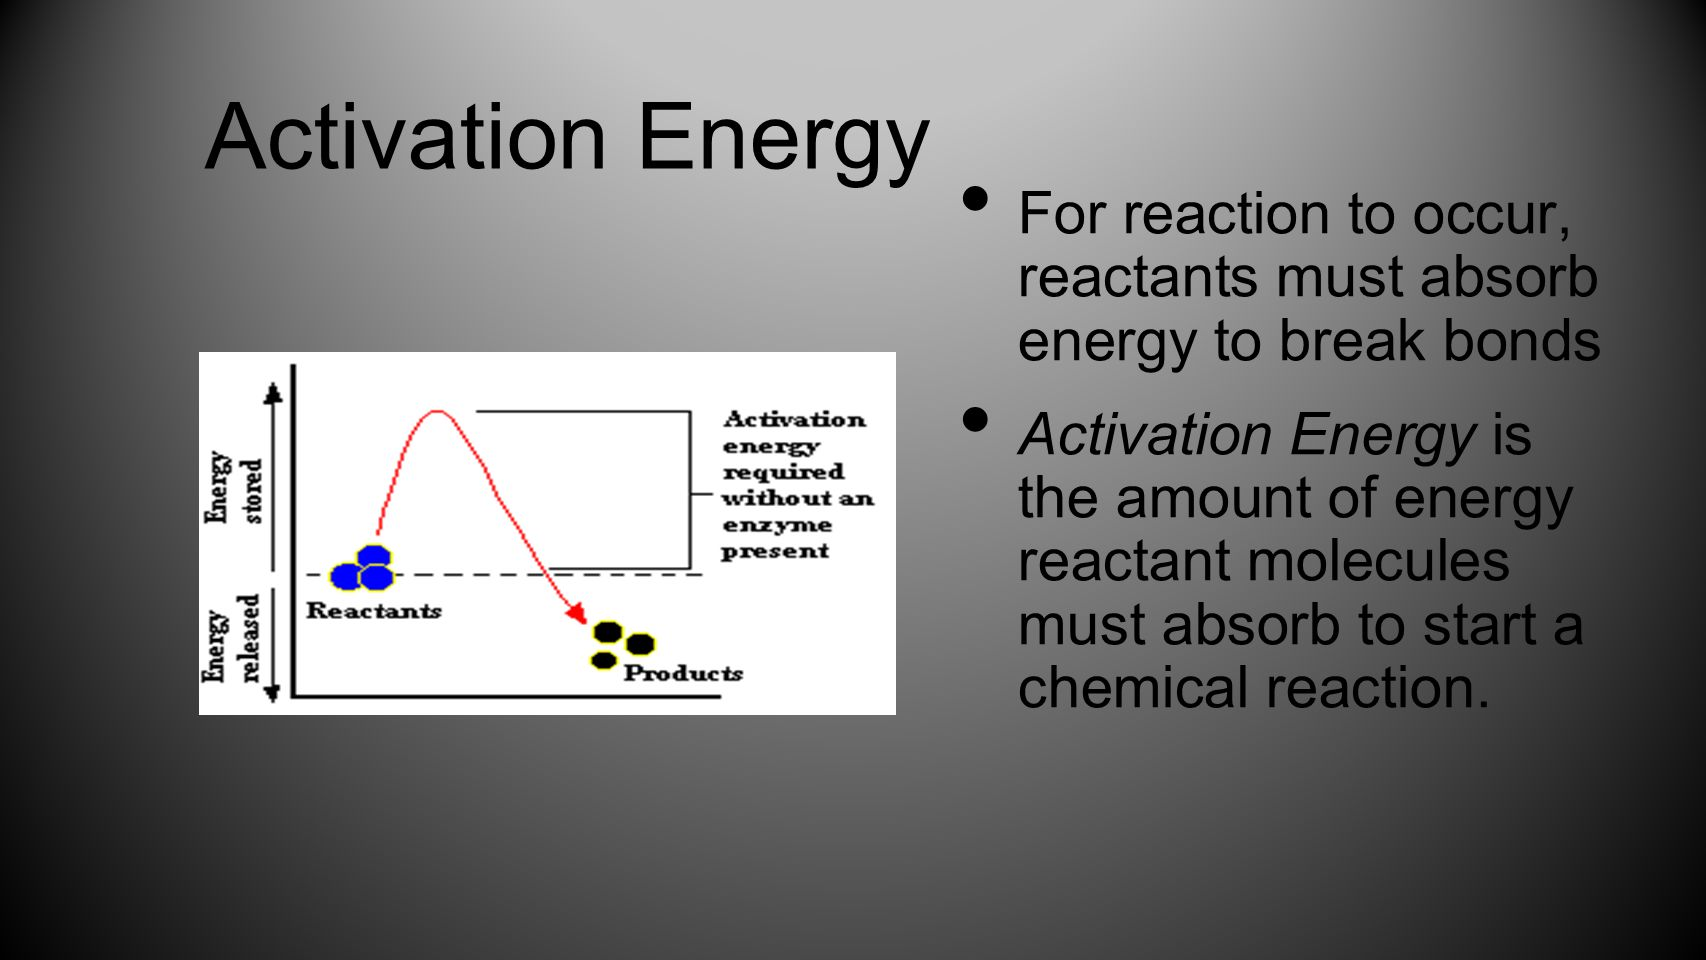 Activation Energy For reaction to occur, reactants must absorb energy to break bonds.